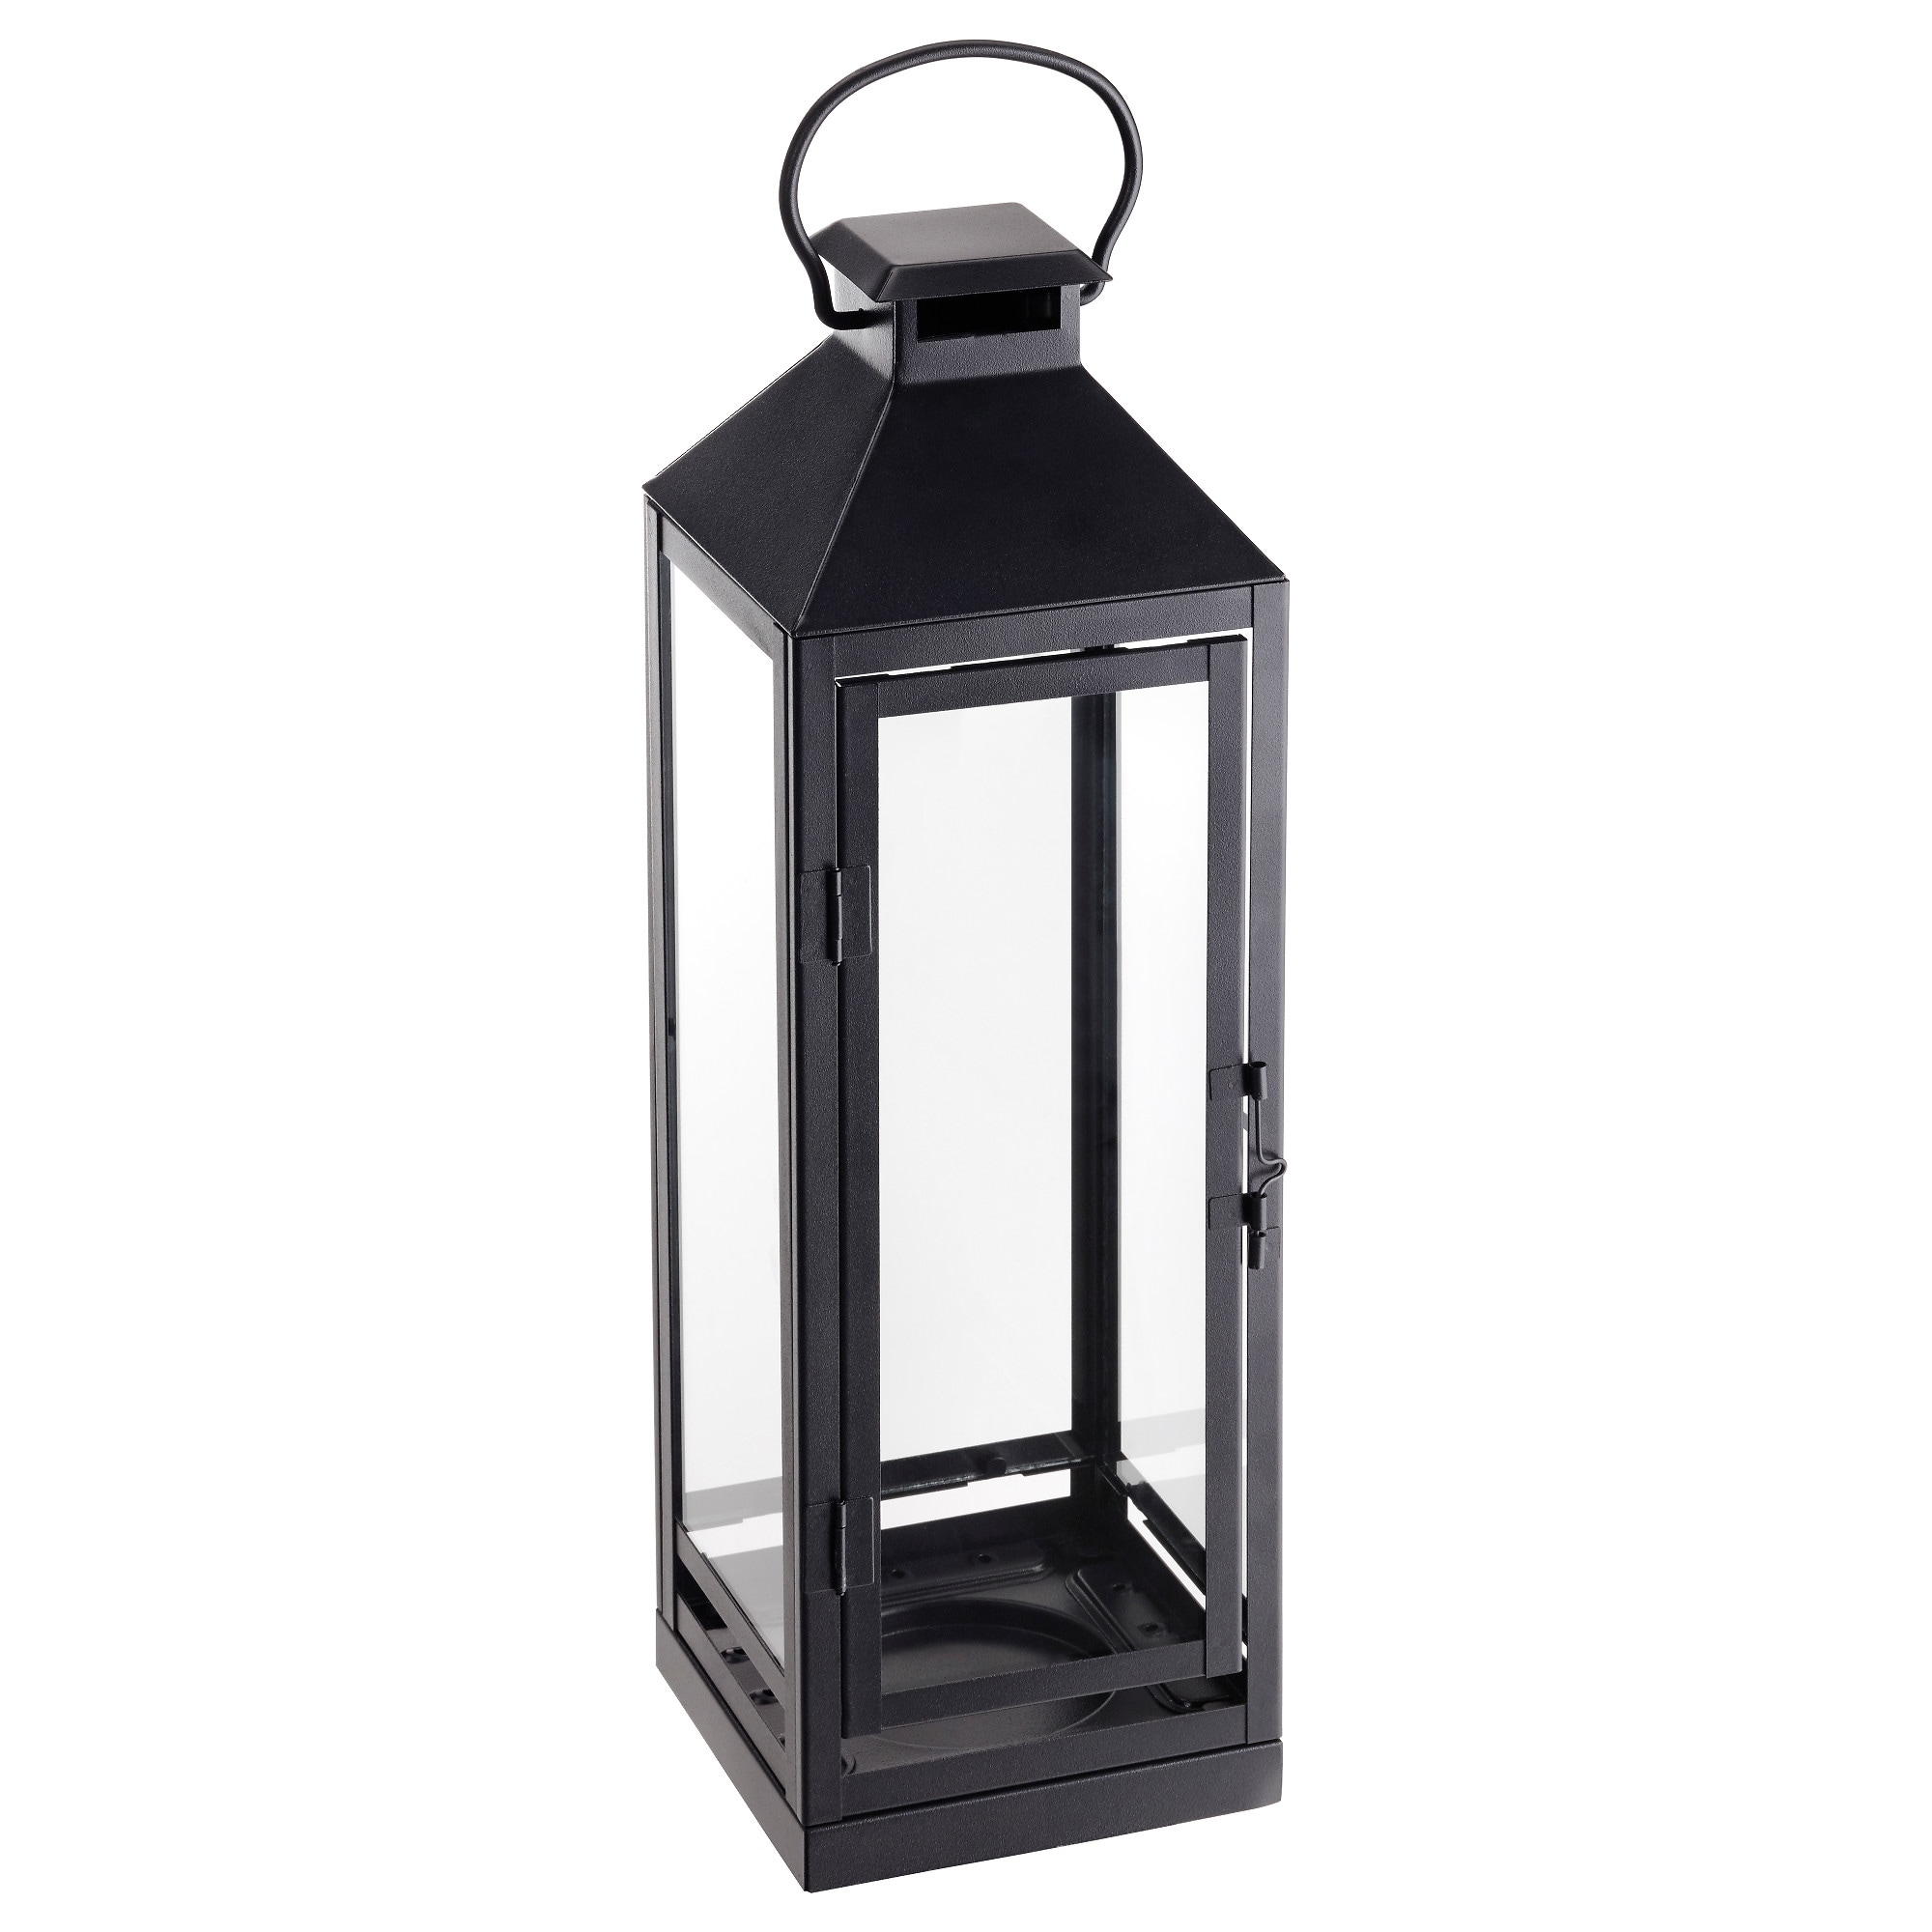 2019 Outdoor Plastic Lanterns With Regard To Lanterns & Candle Lanterns – Ikea (View 12 of 20)